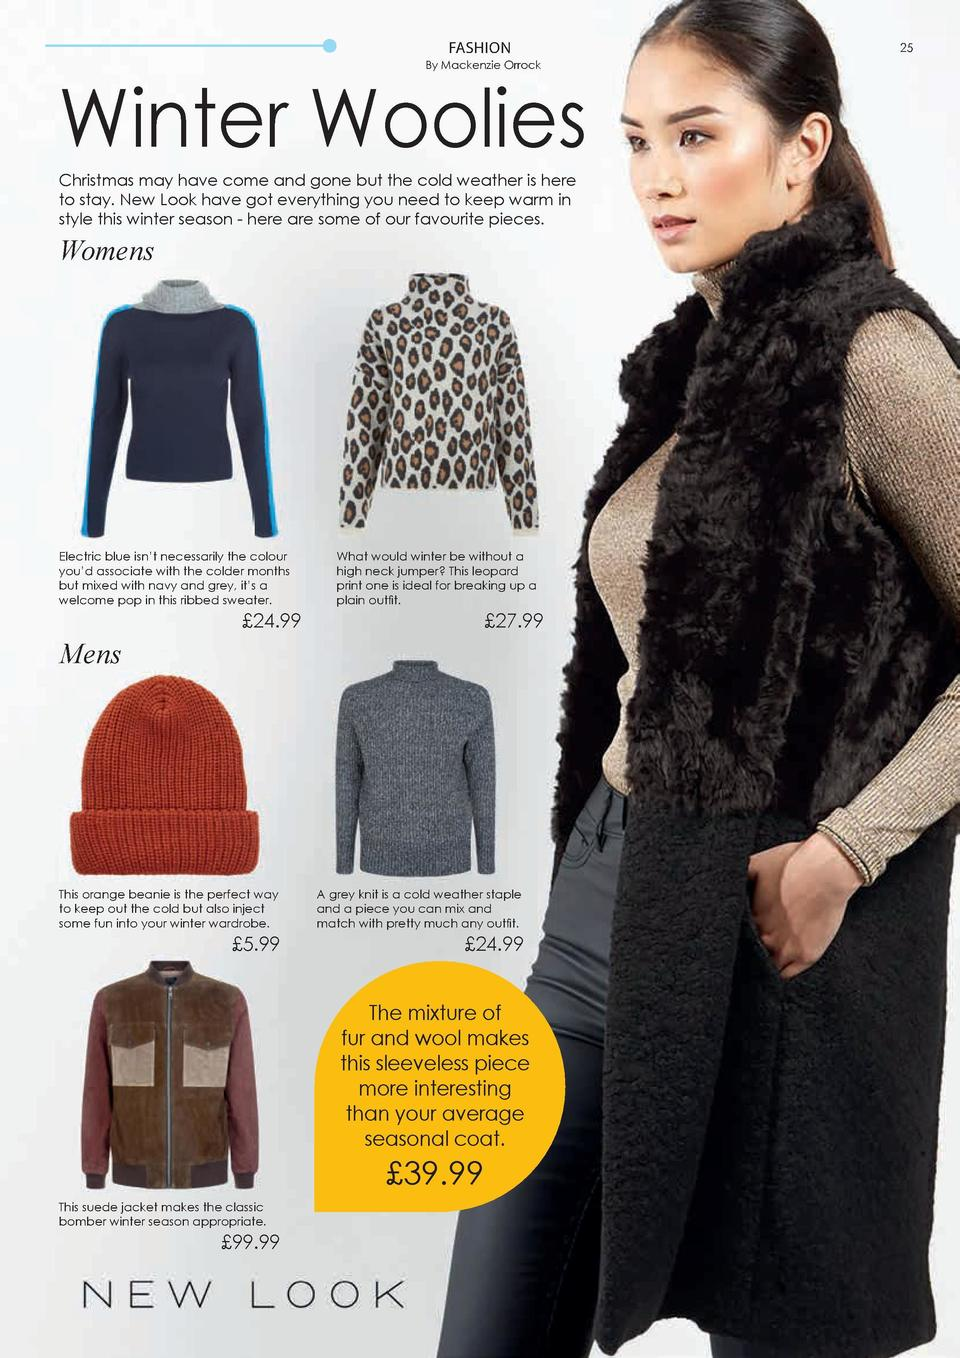 FASHION  24  FASHION  By Mackenzie Orrock  By Mackenzie Orrock  Winter Woolies    5  Christmas may have come and gone but ...